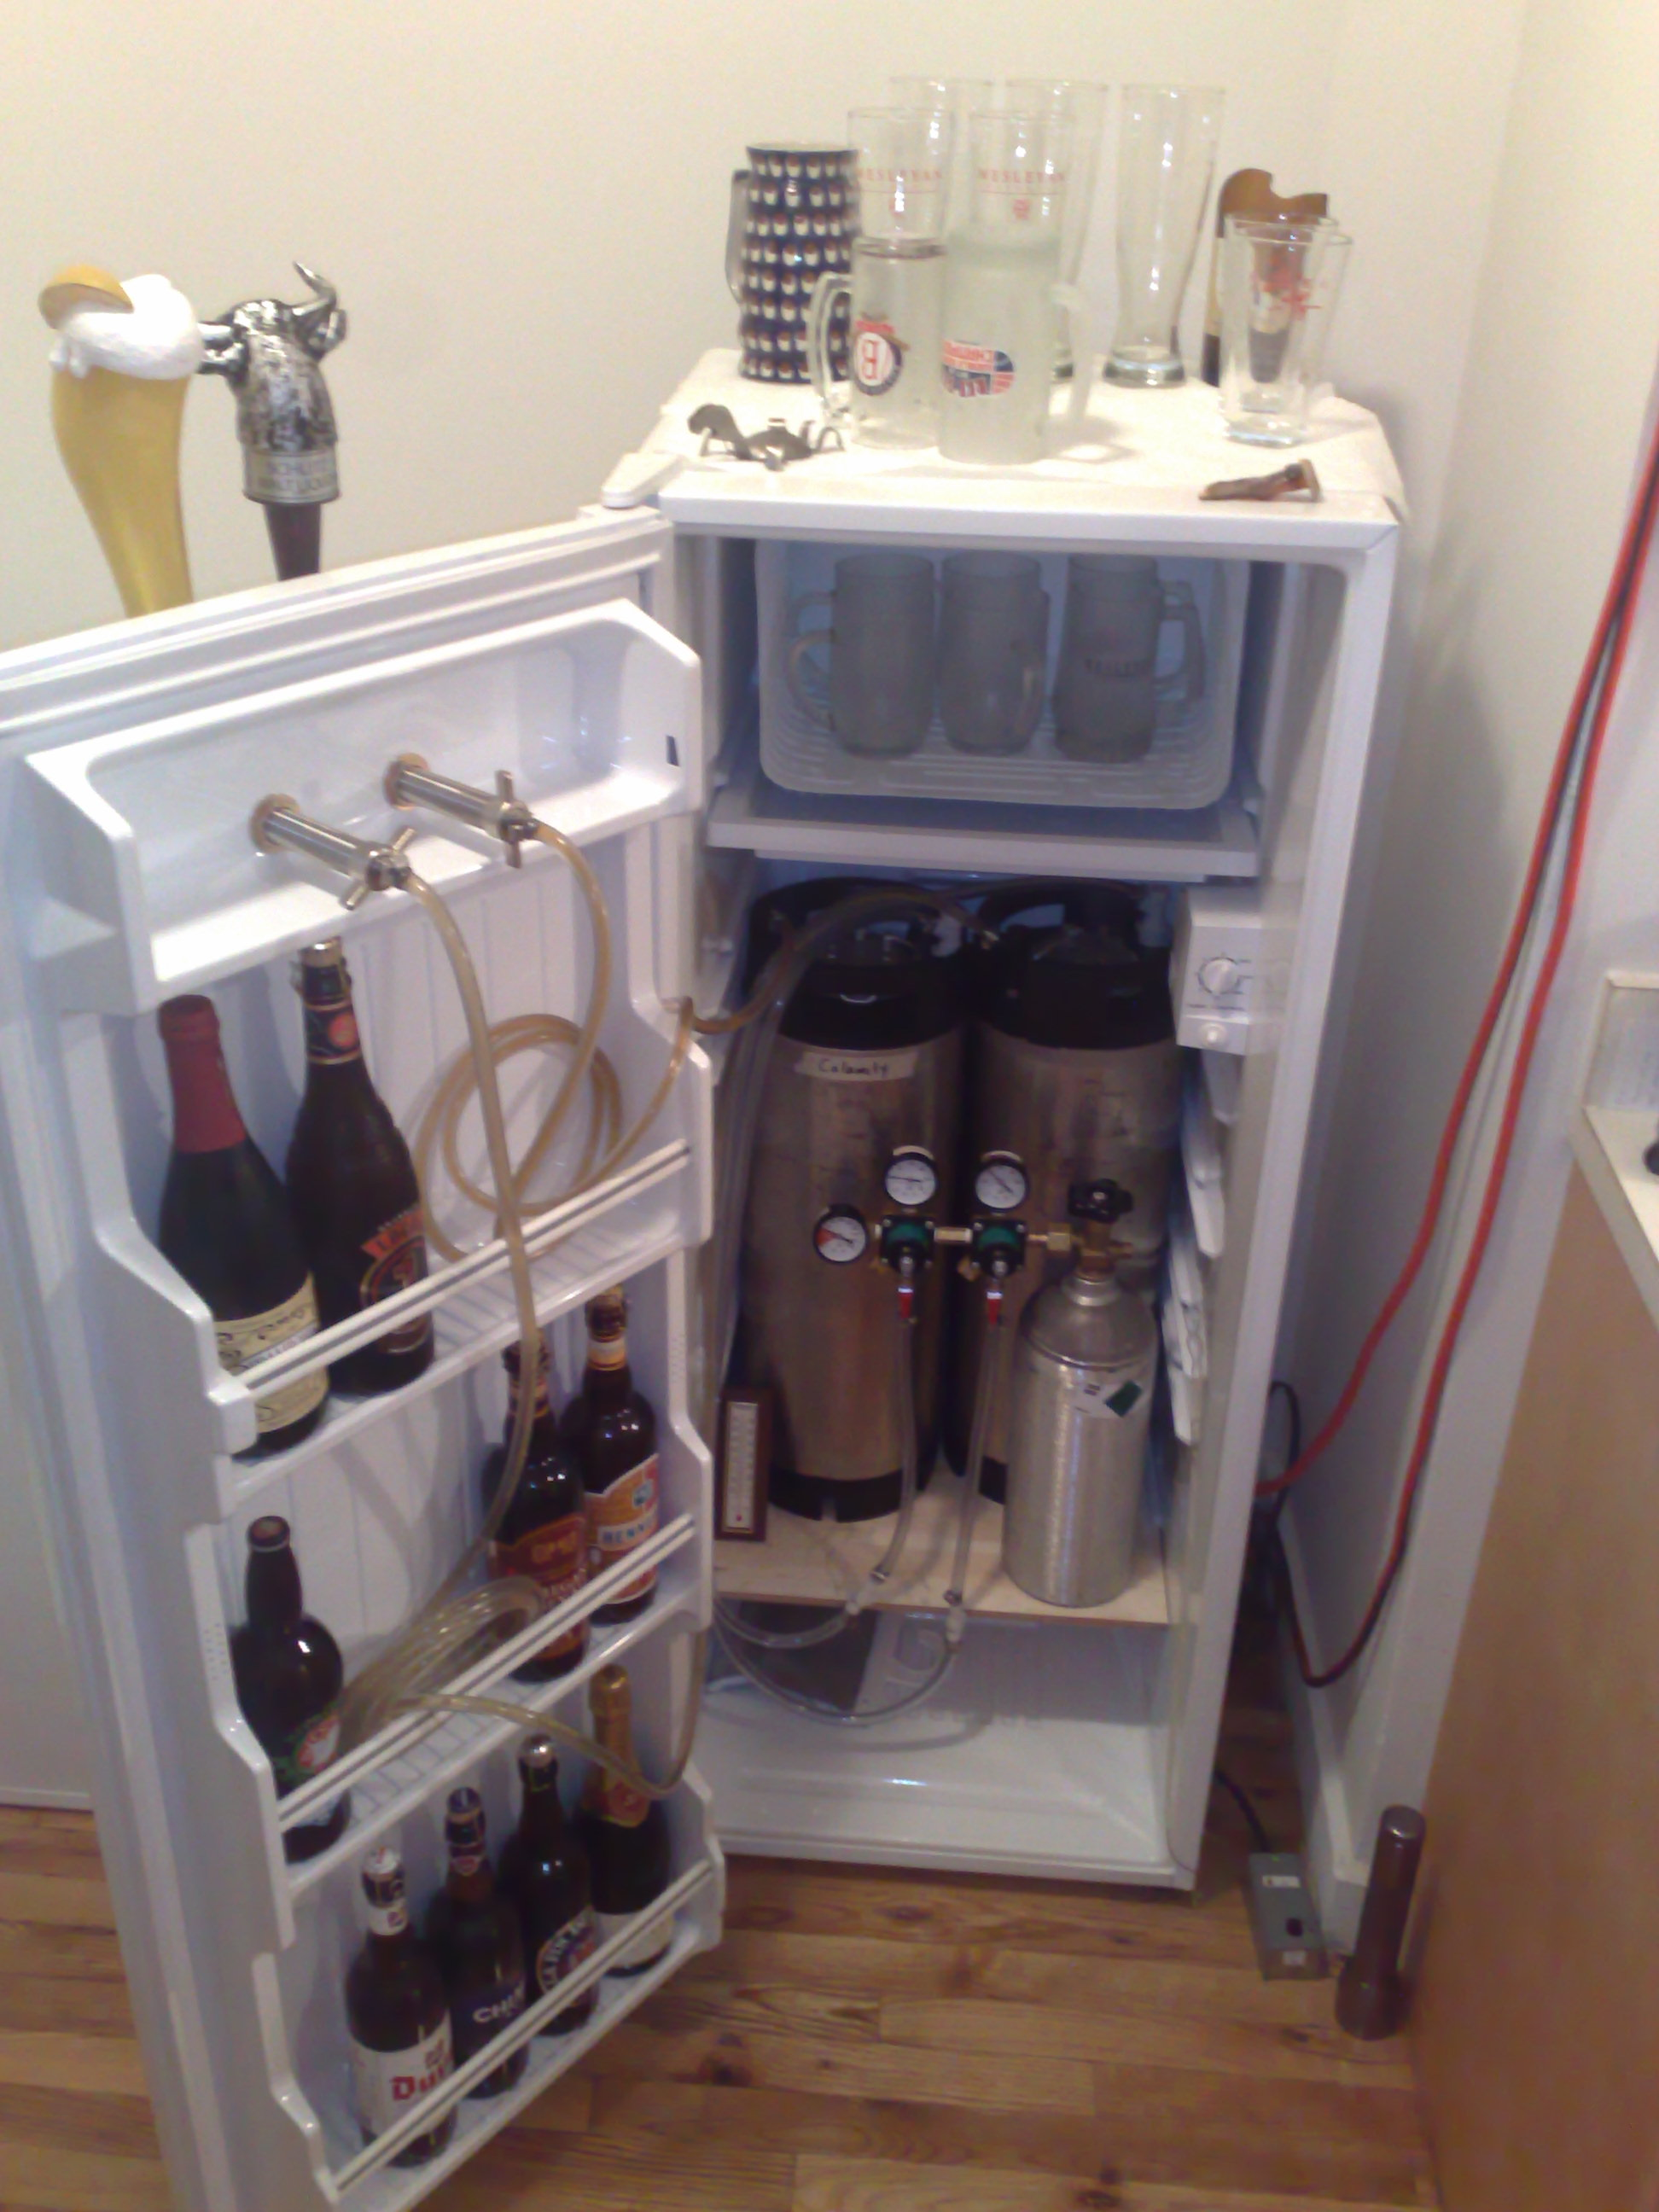 How to make a kegerator best kegerator guide Build your home